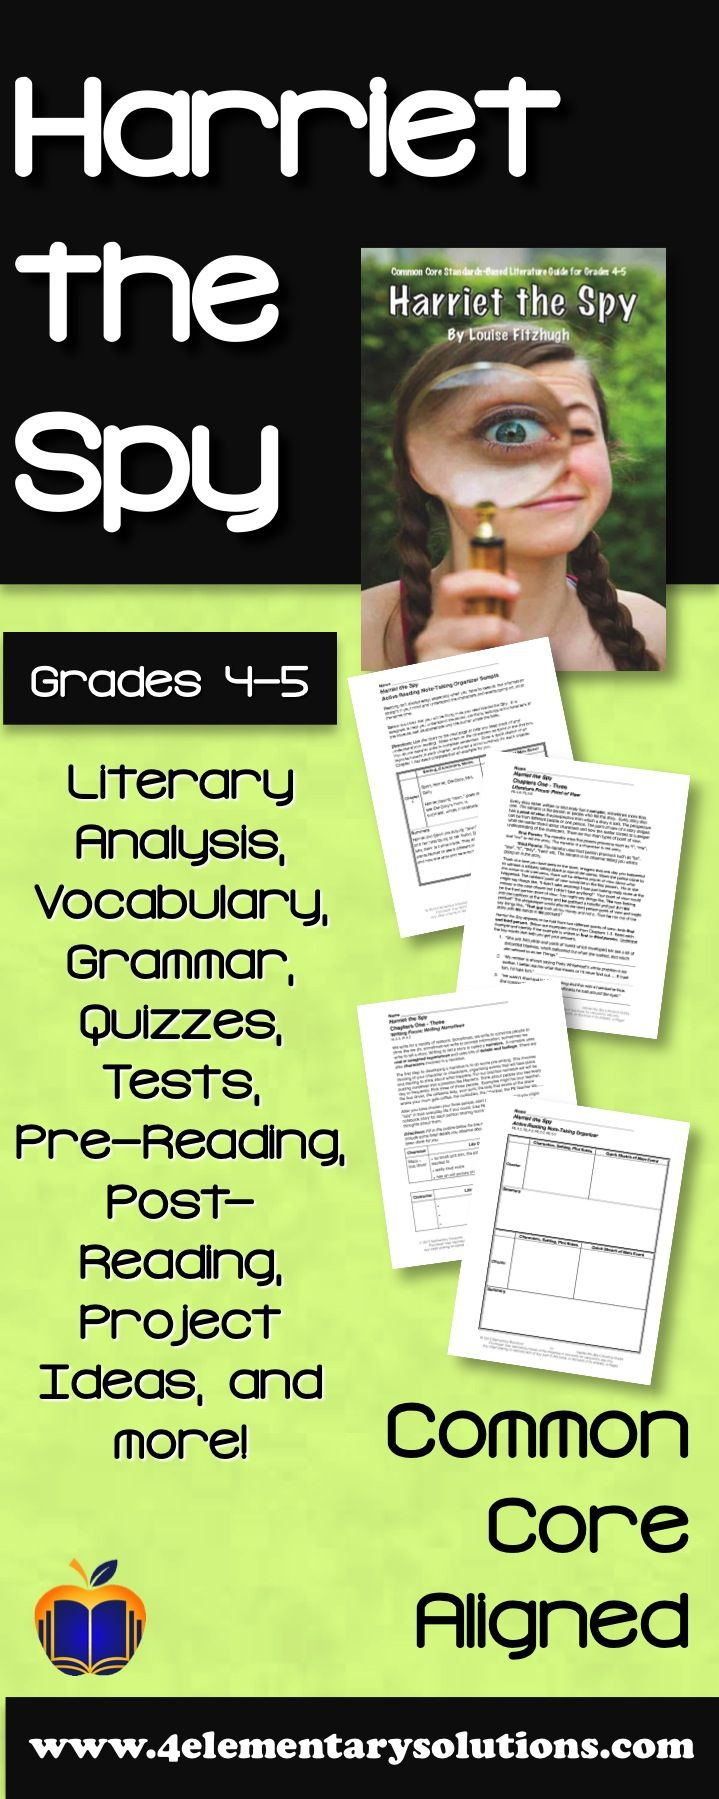 harriet the spy activities lessons resources and more common rh pinterest com harriet the spy study guide Harriet The Spy Blog Wars